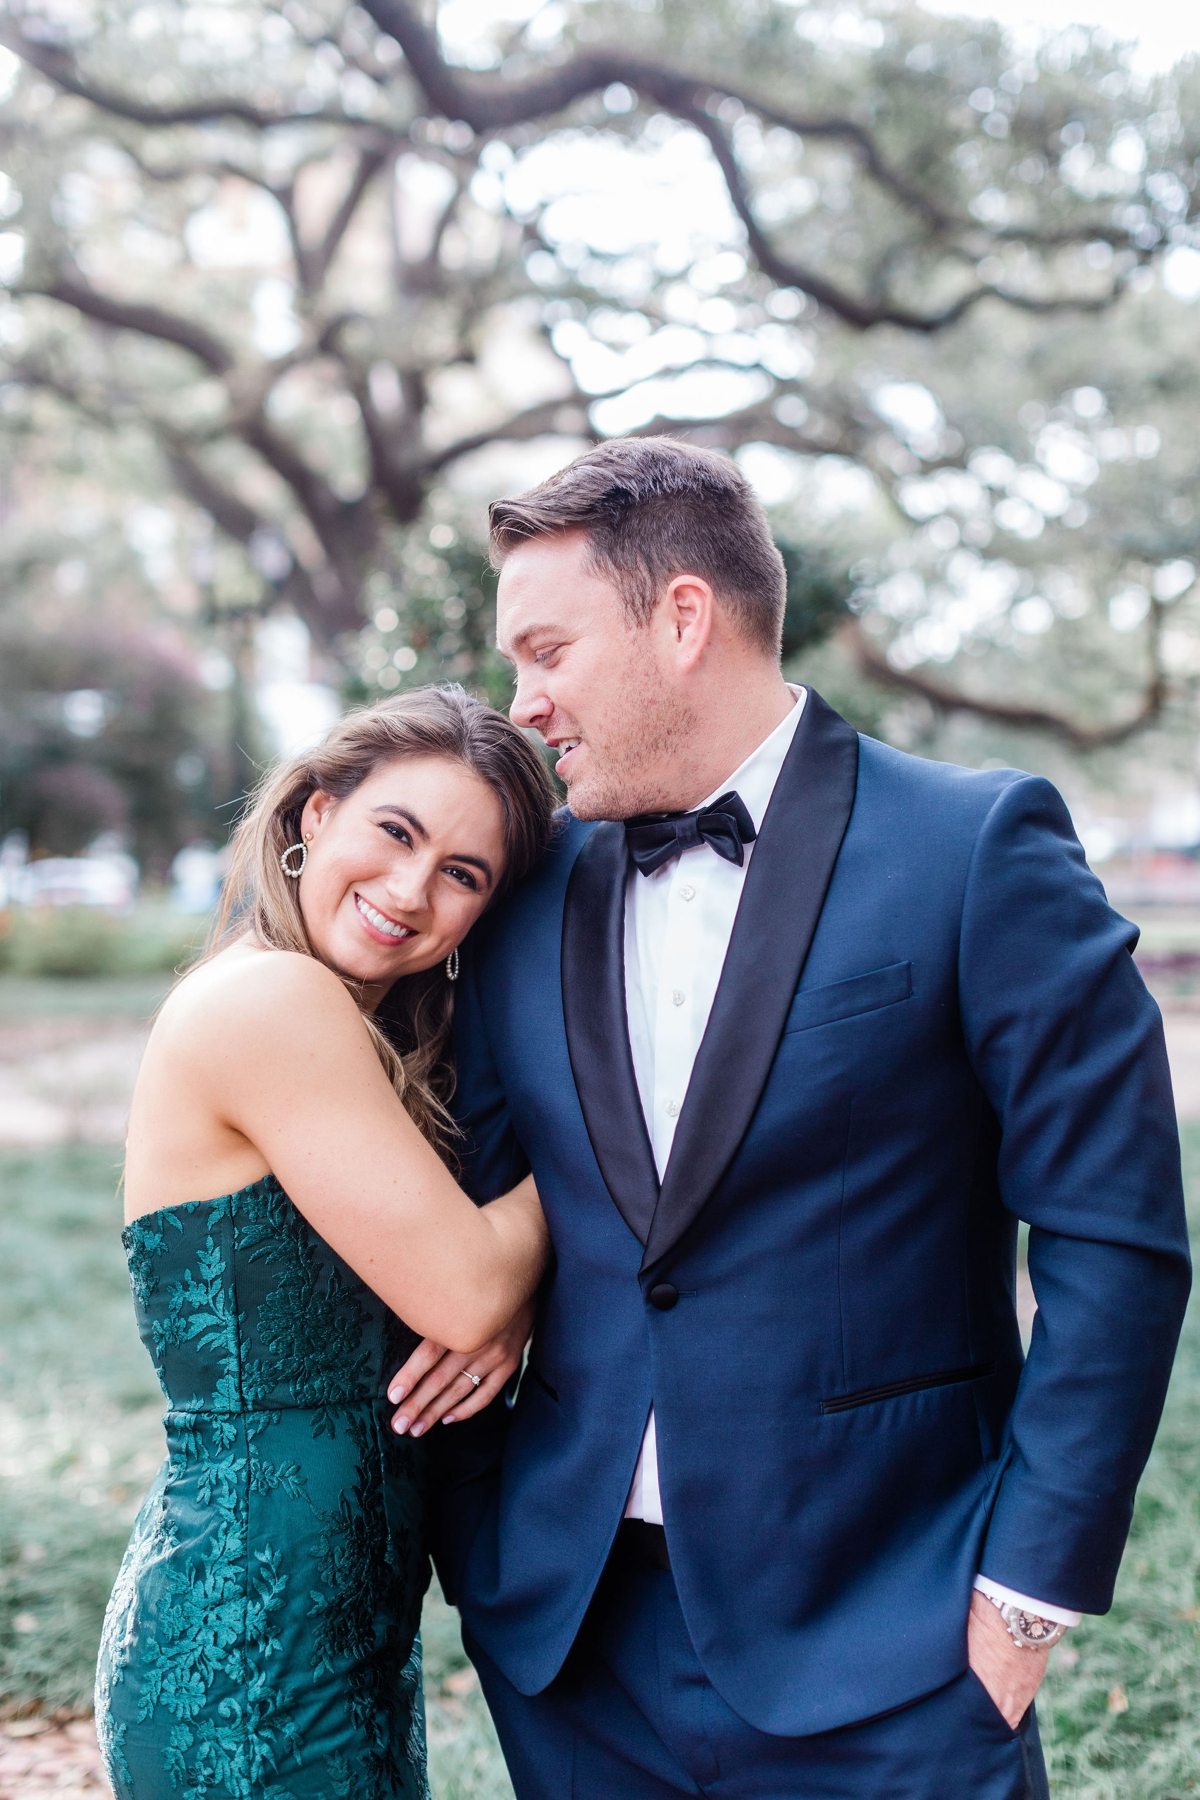 Spring Engagement Session in Savannah, Georgia